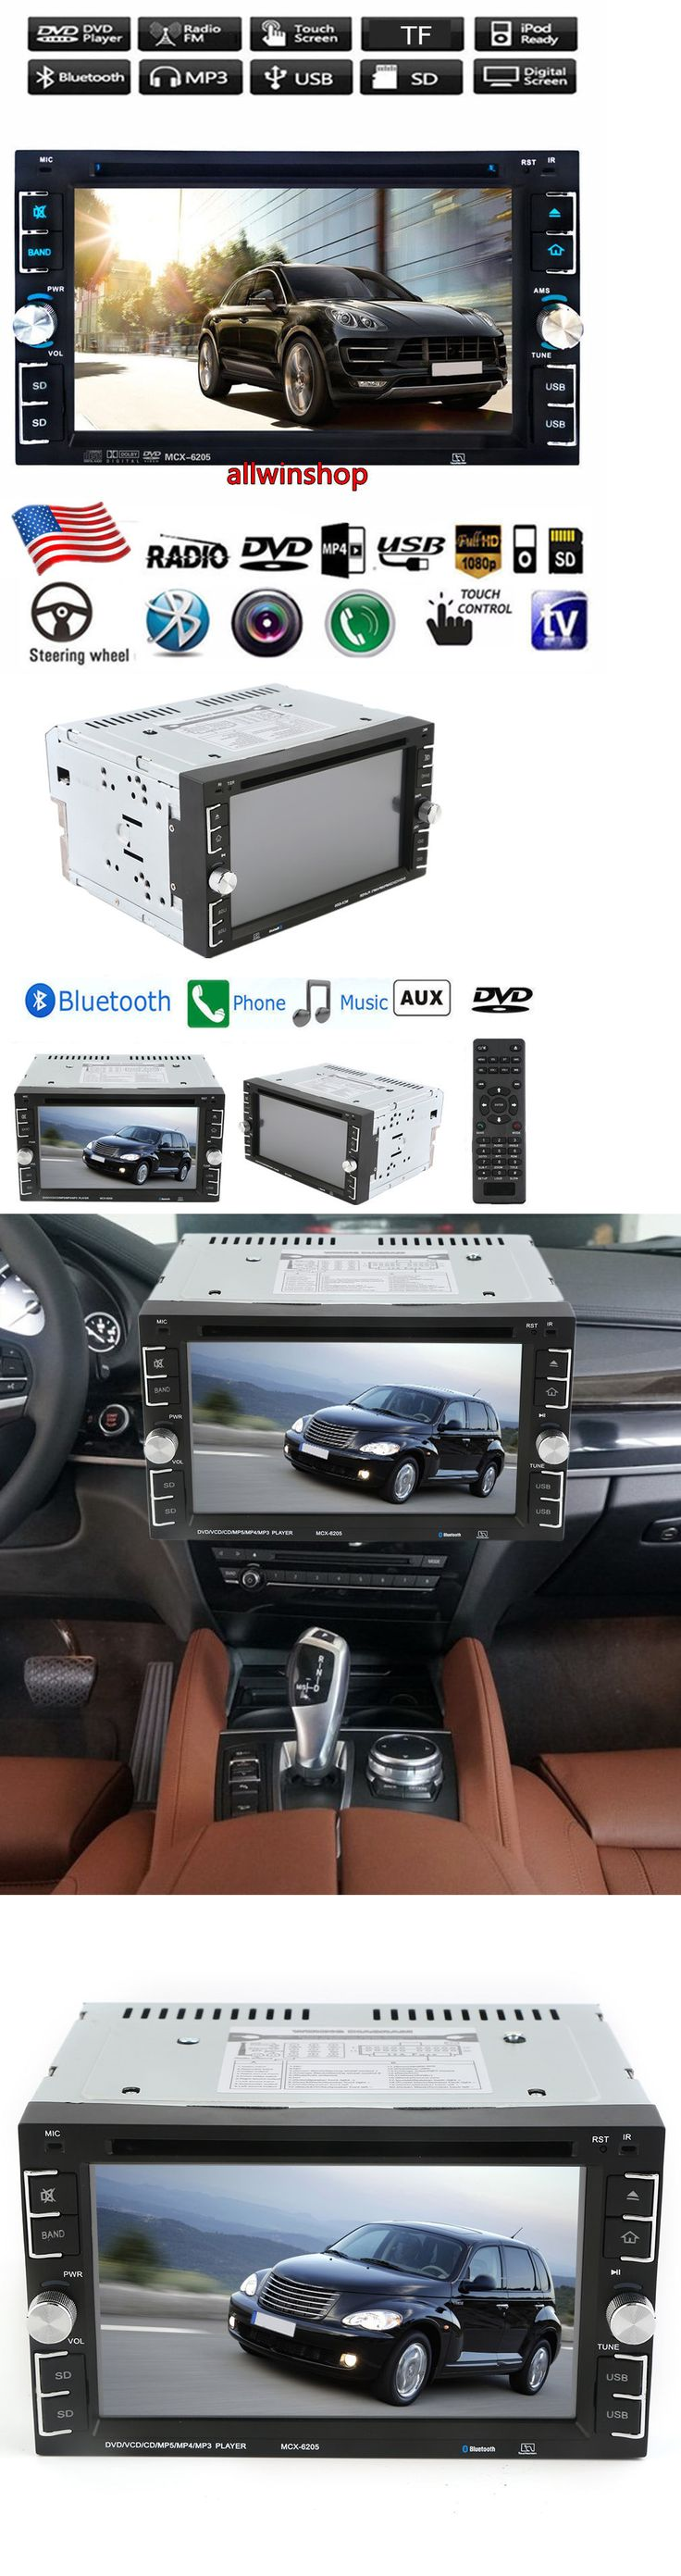 Vehicle Electronics And GPS: Hd Touch Screen Double 2Din 6.2 Car Stereo Dvd Cd Mp3 Player Bluetooth Radio T -> BUY IT NOW ONLY: $66.77 on eBay!